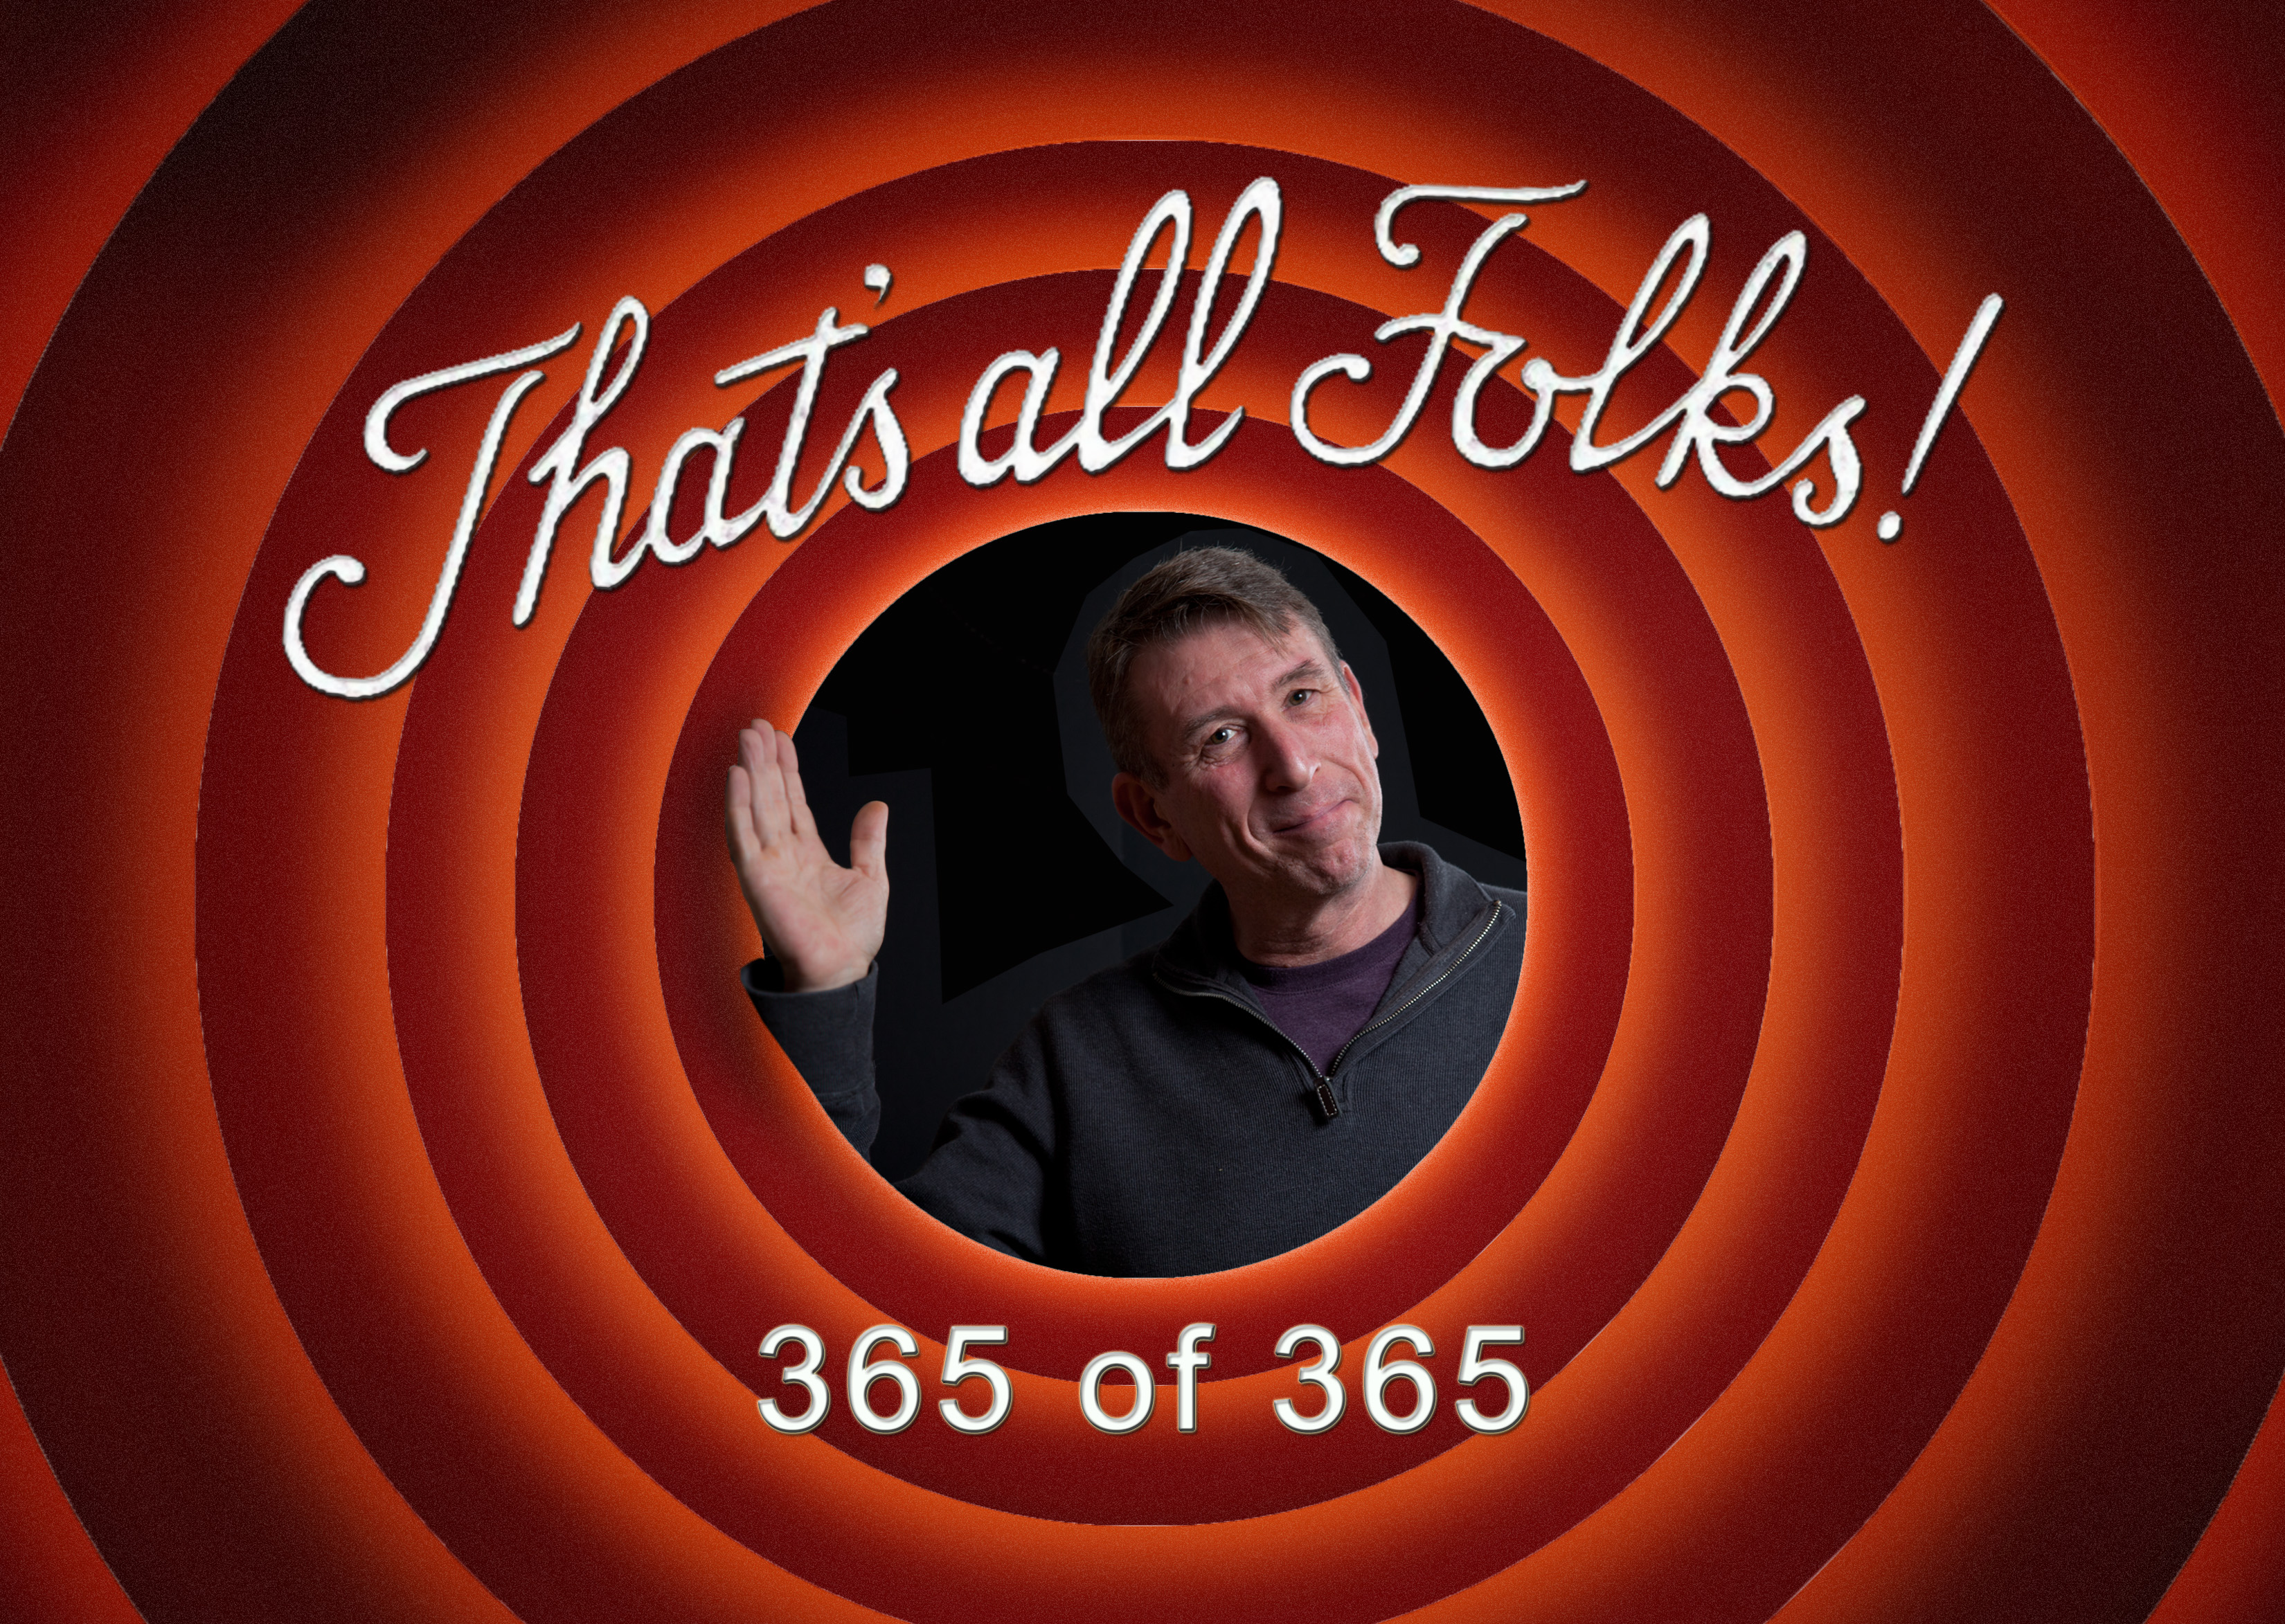 thats all folks 365365 thanks to all of you for